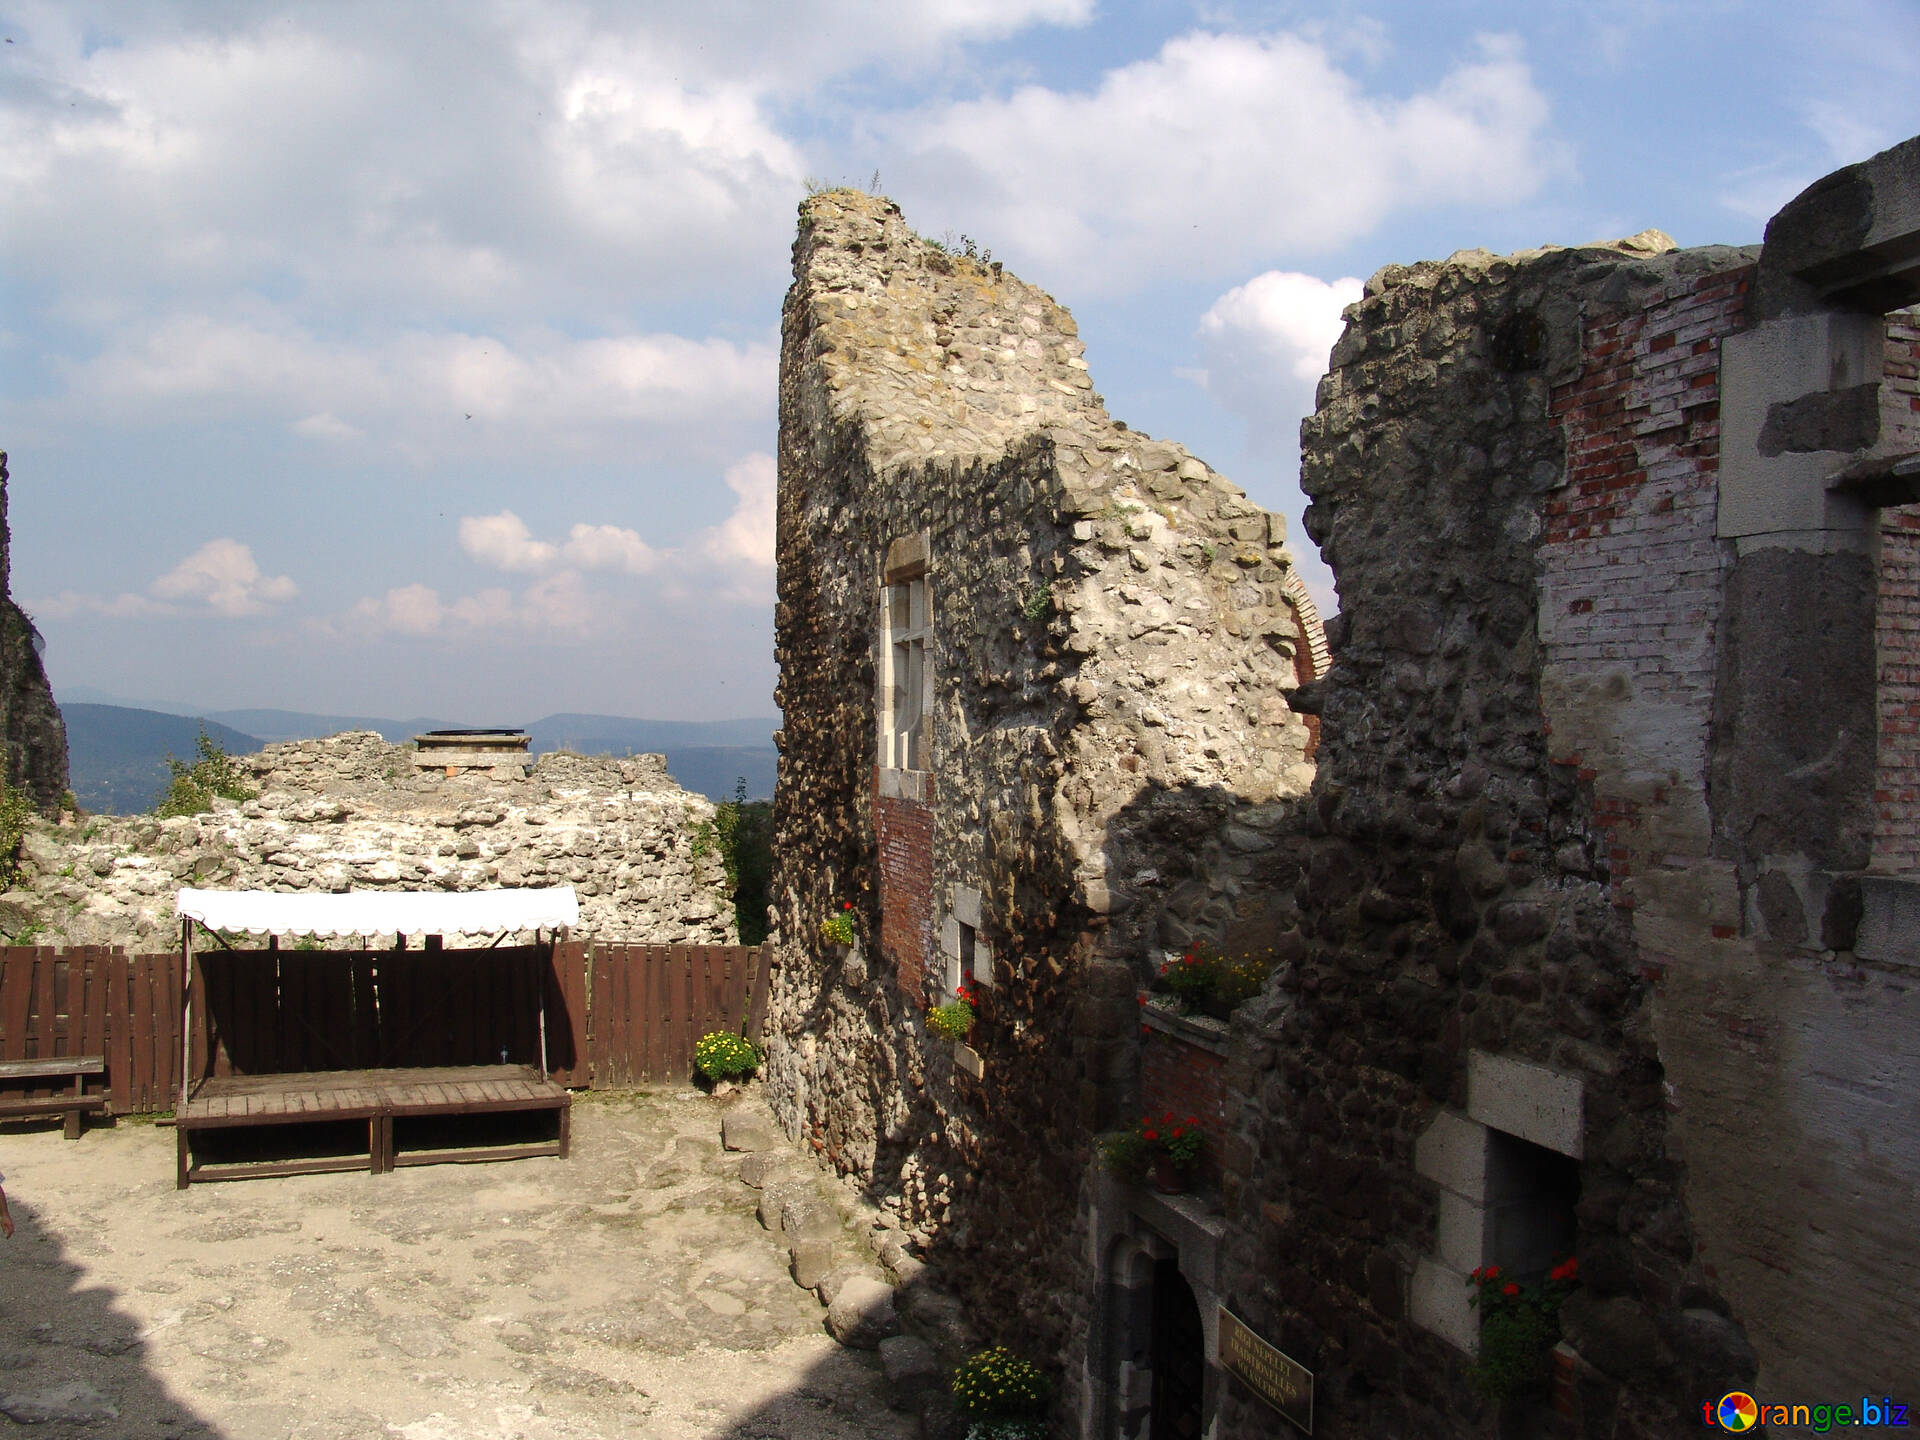 Download Free Image The Ruins Of An Ancient House In